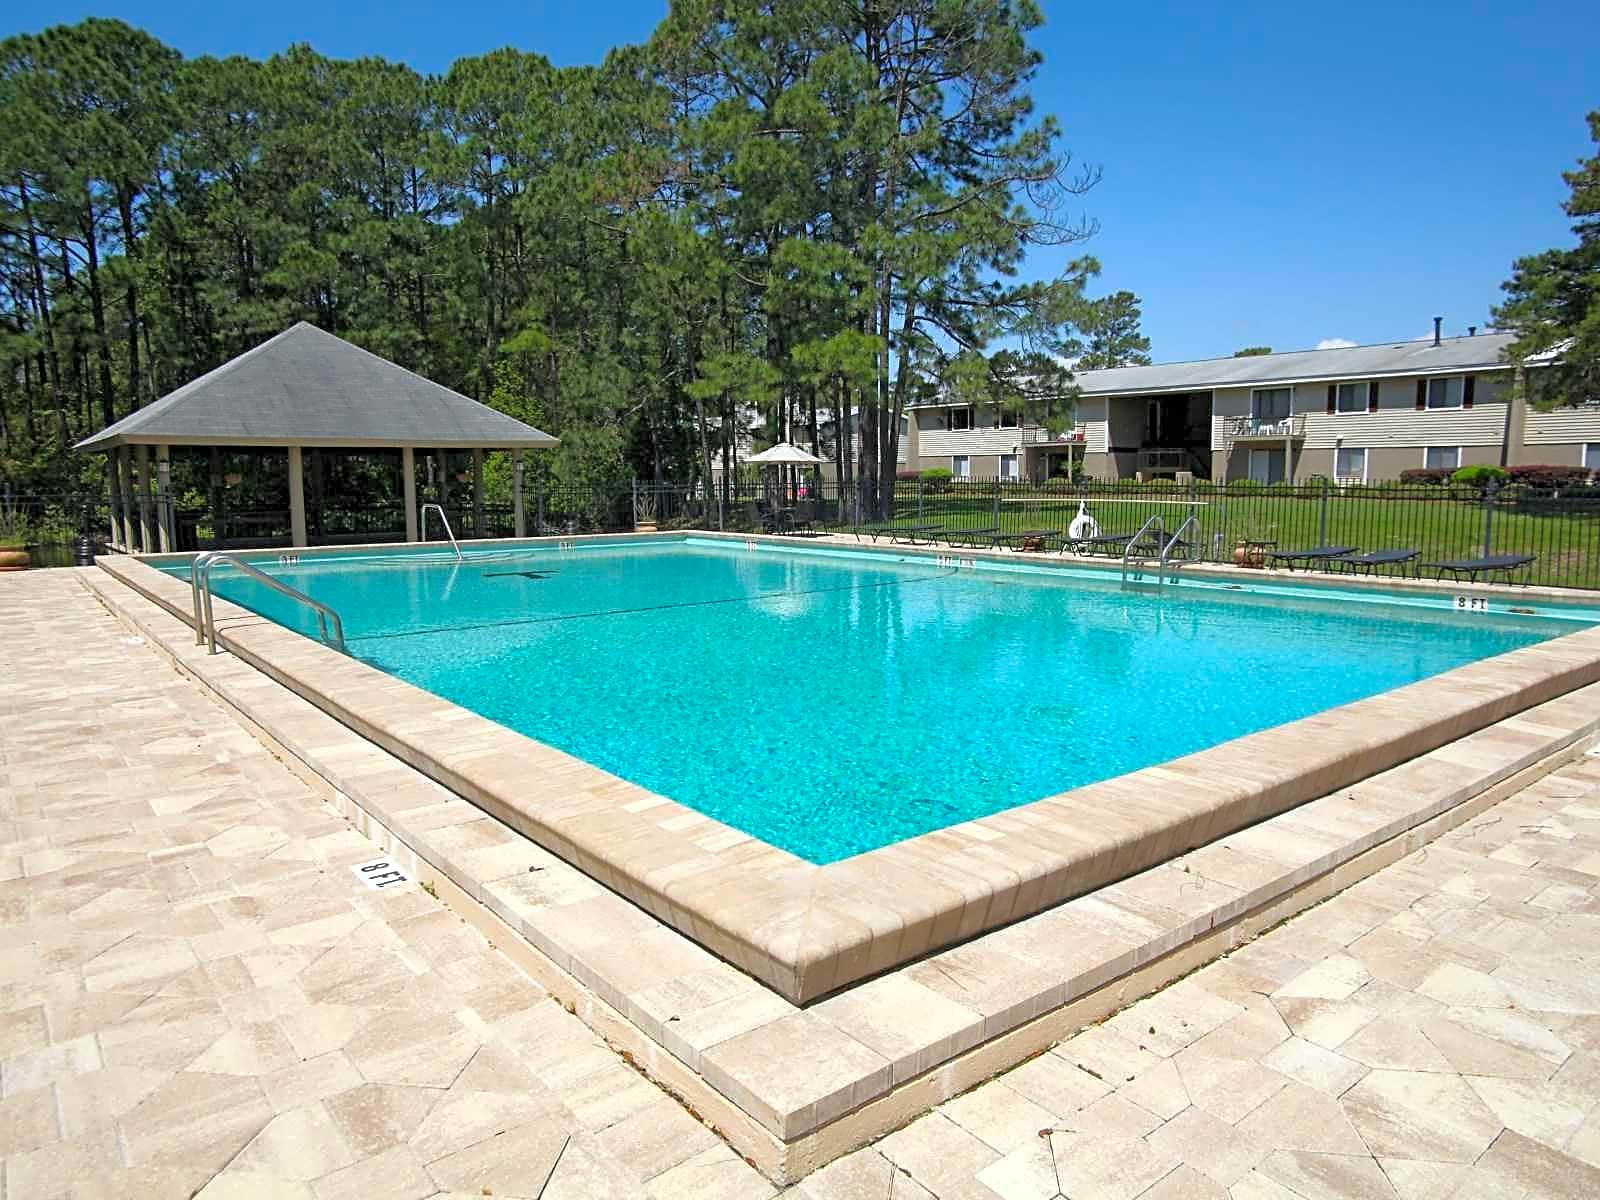 Photo: Panama City Apartment for Rent - $790.00 / month; 2 Bd & 2 Ba